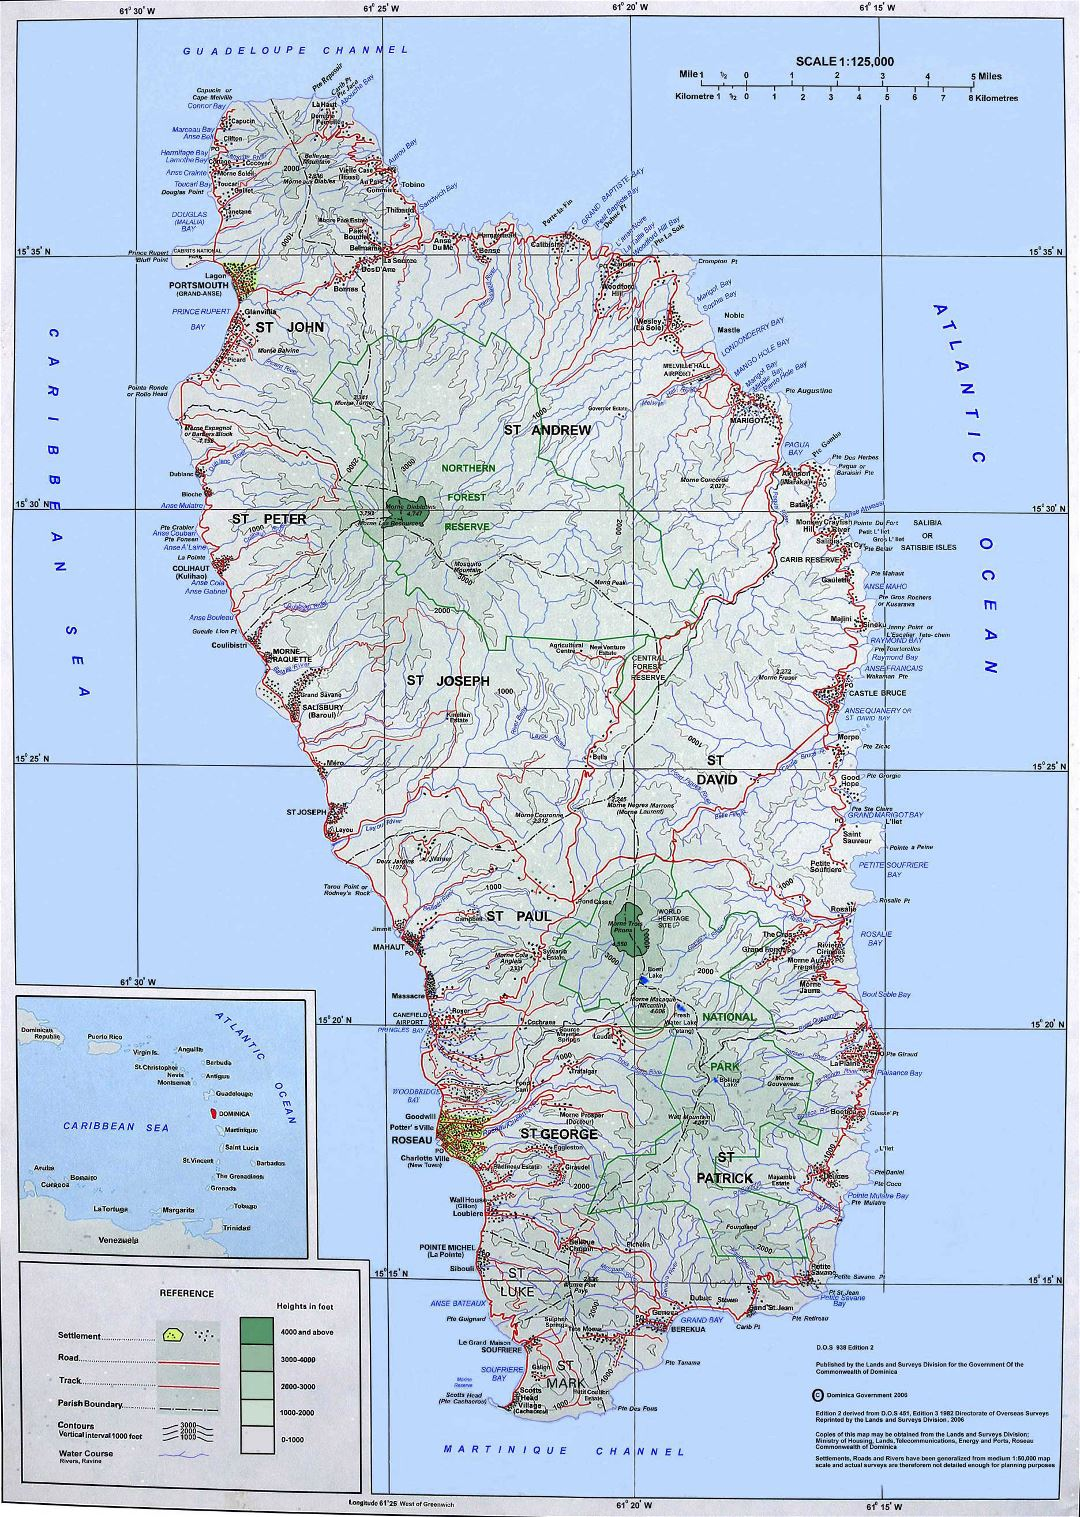 Large topographical map of Dominica Island